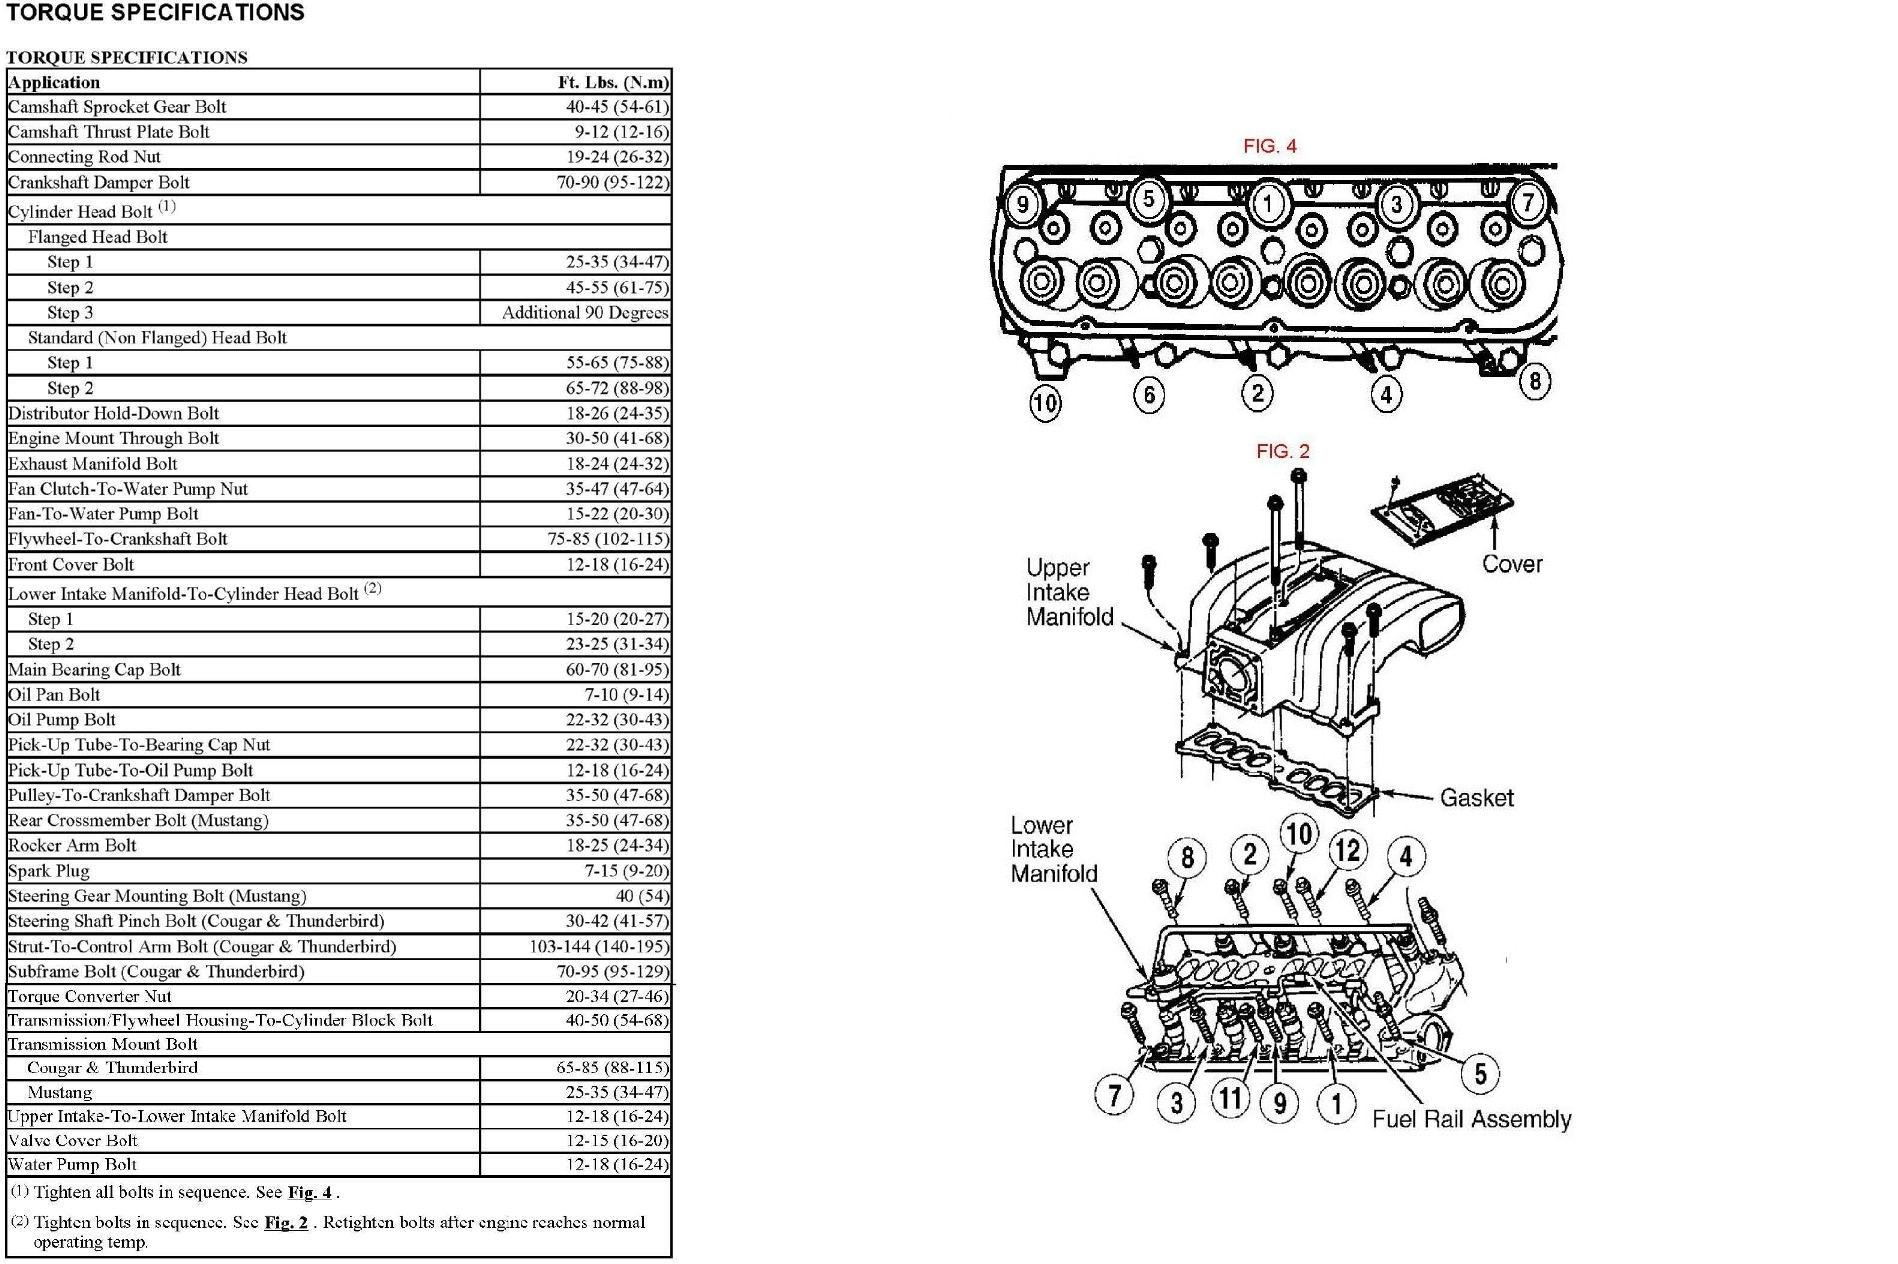 Fox Ford 5 0 Engine Wiring Diagram • Wiring Diagram For Free